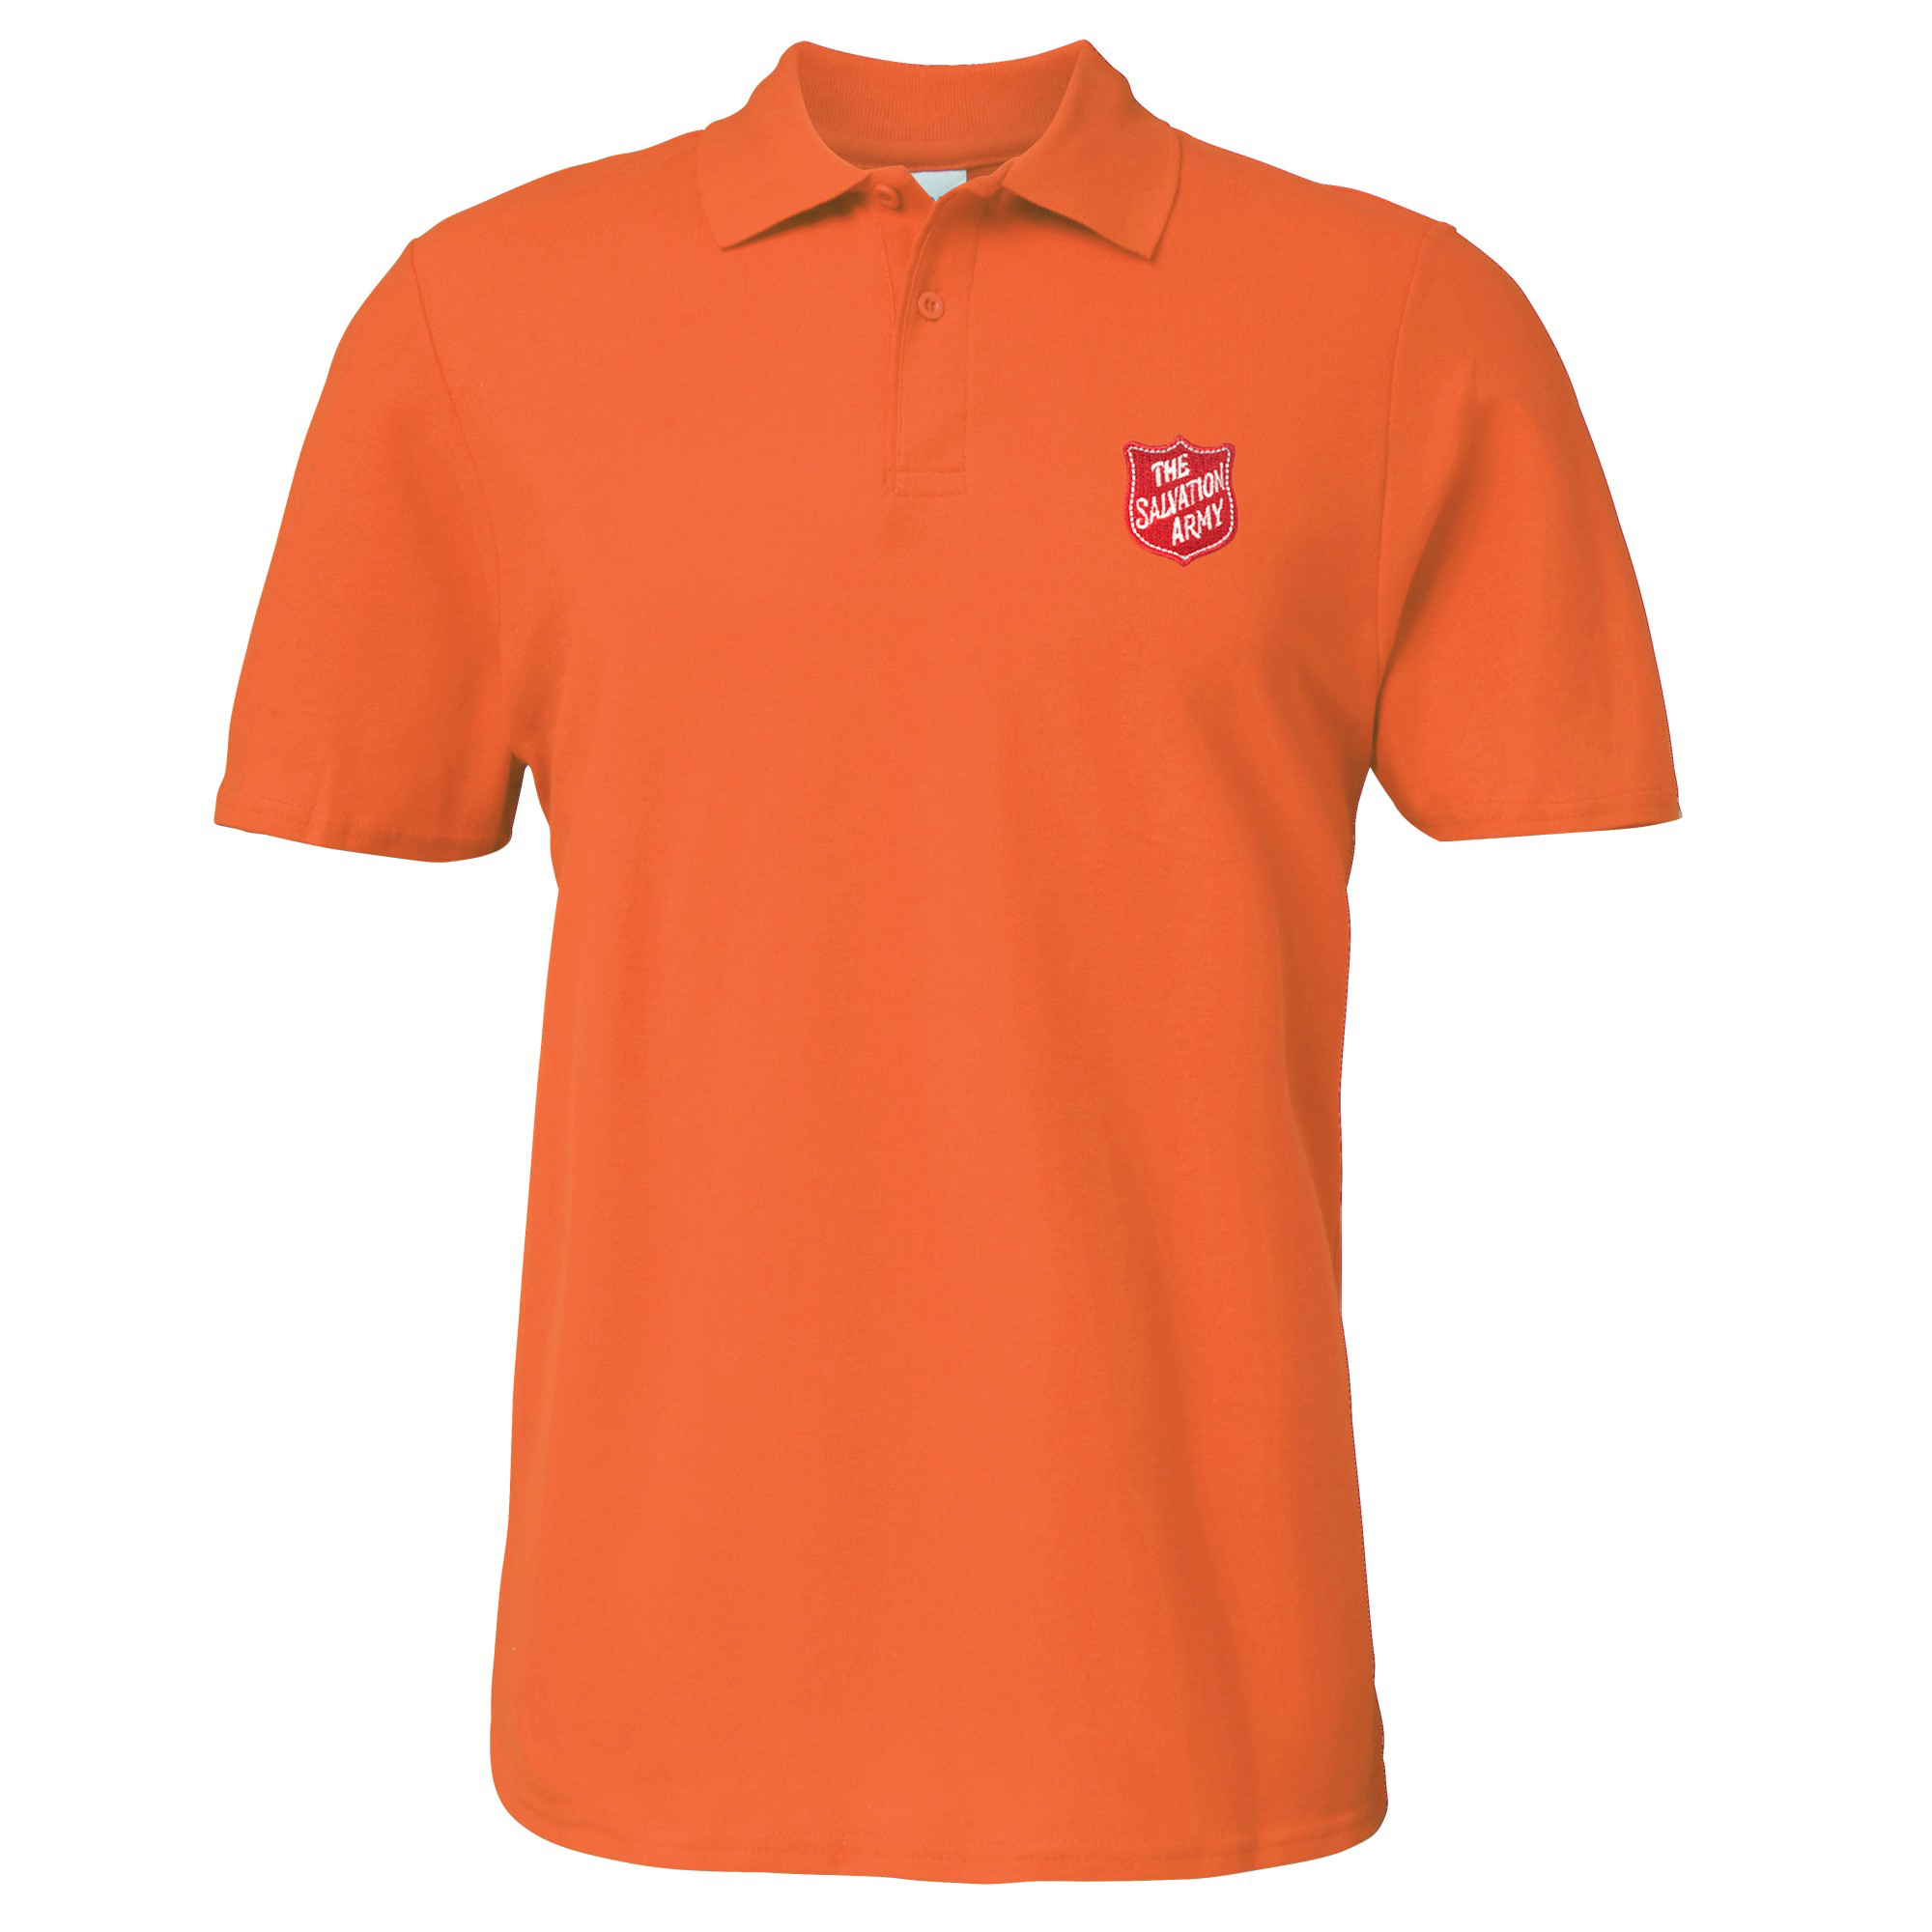 Essentials Polo Shirt - Orange with Shield